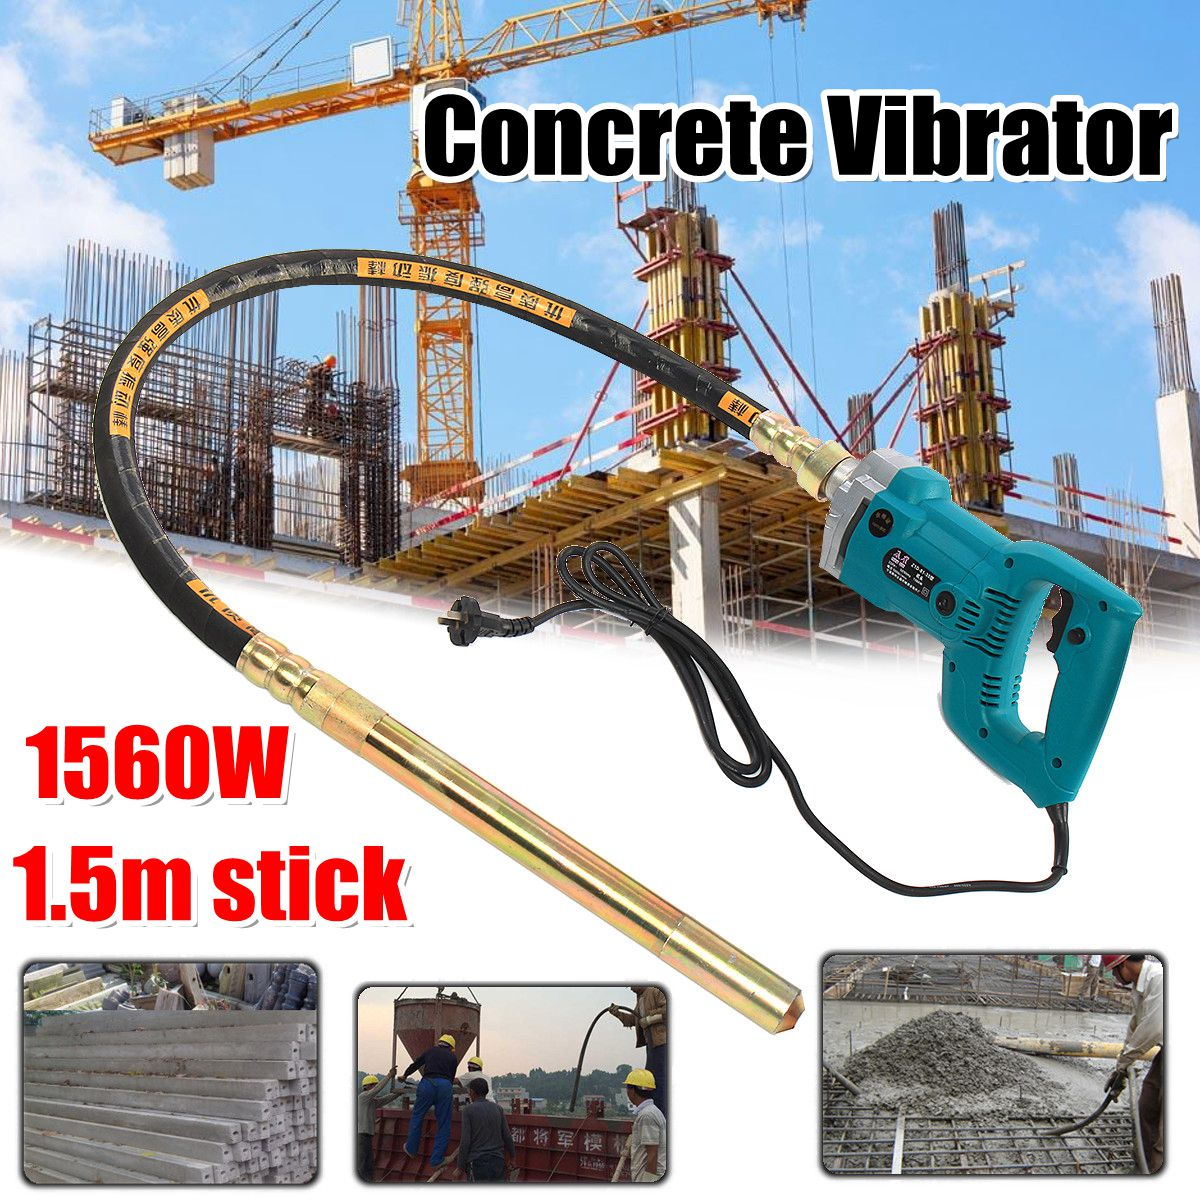 Здесь продается  800W/1200W/1560W Concrete Vibrators Electric Cement Soil Mixer with Stick 3/4 HP- Heavy Duty Remove Air Bubbles & Level 5000 VPM  Инструменты